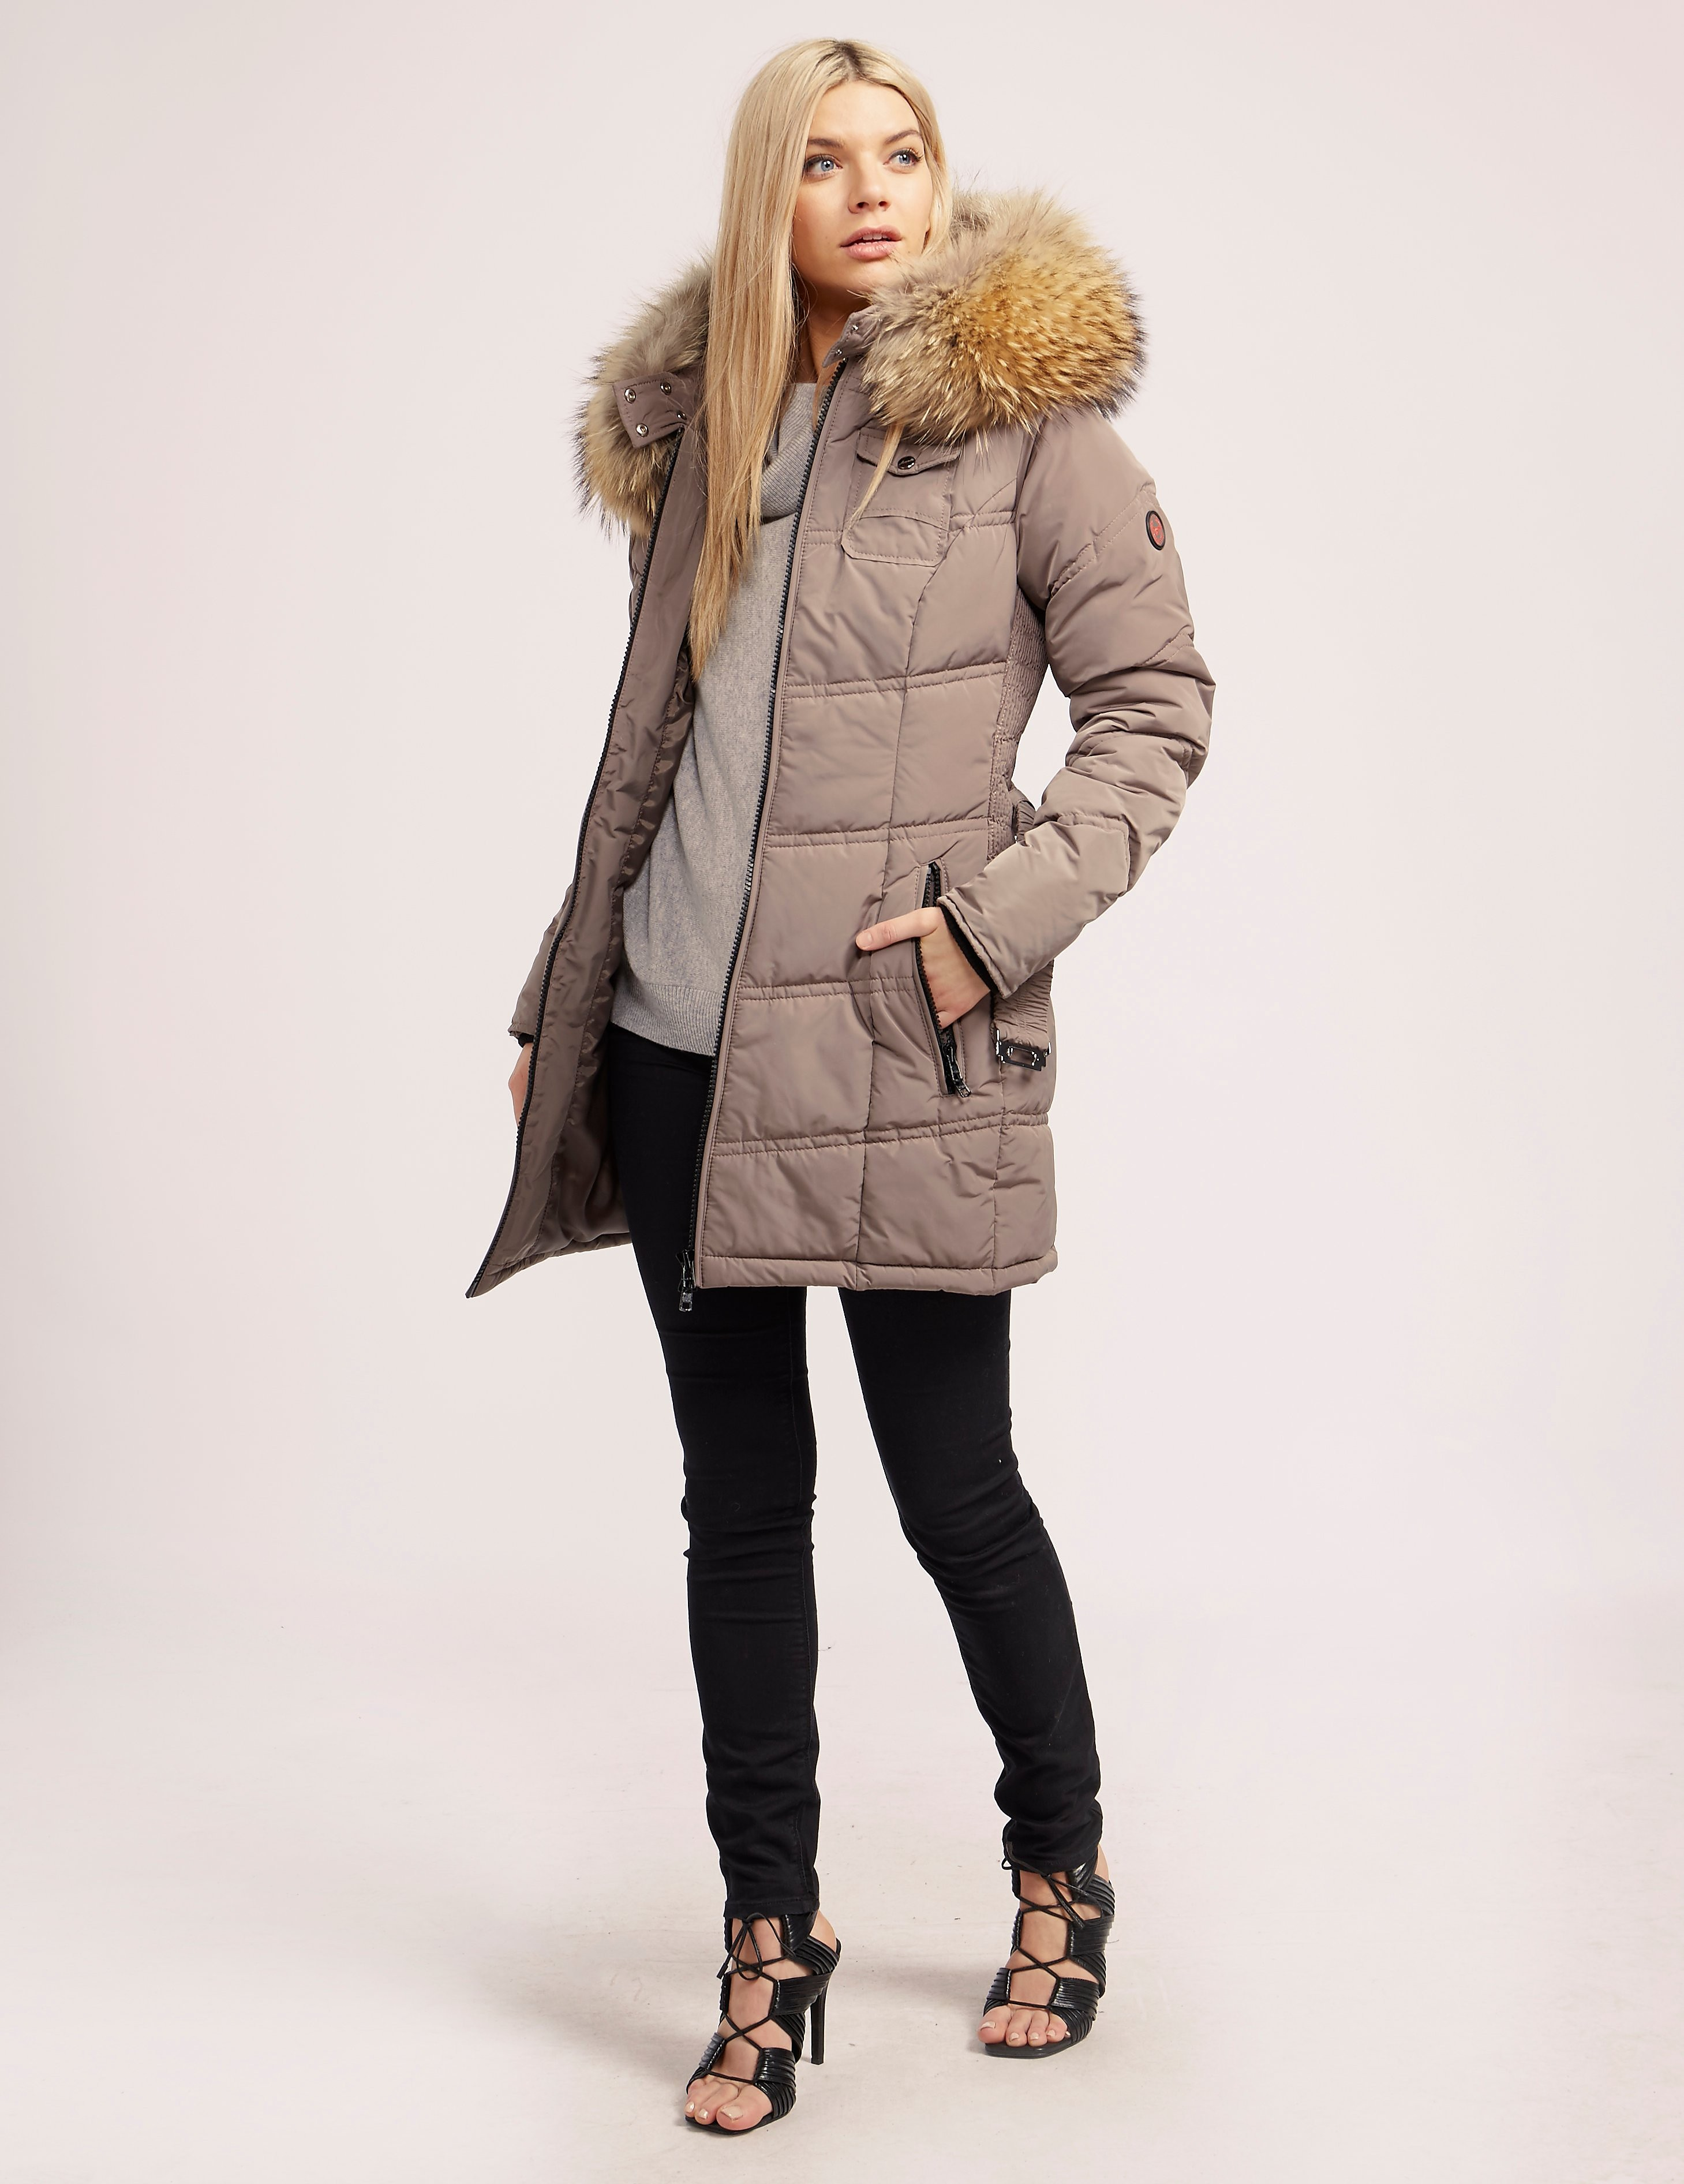 Froccella Belted Jacket